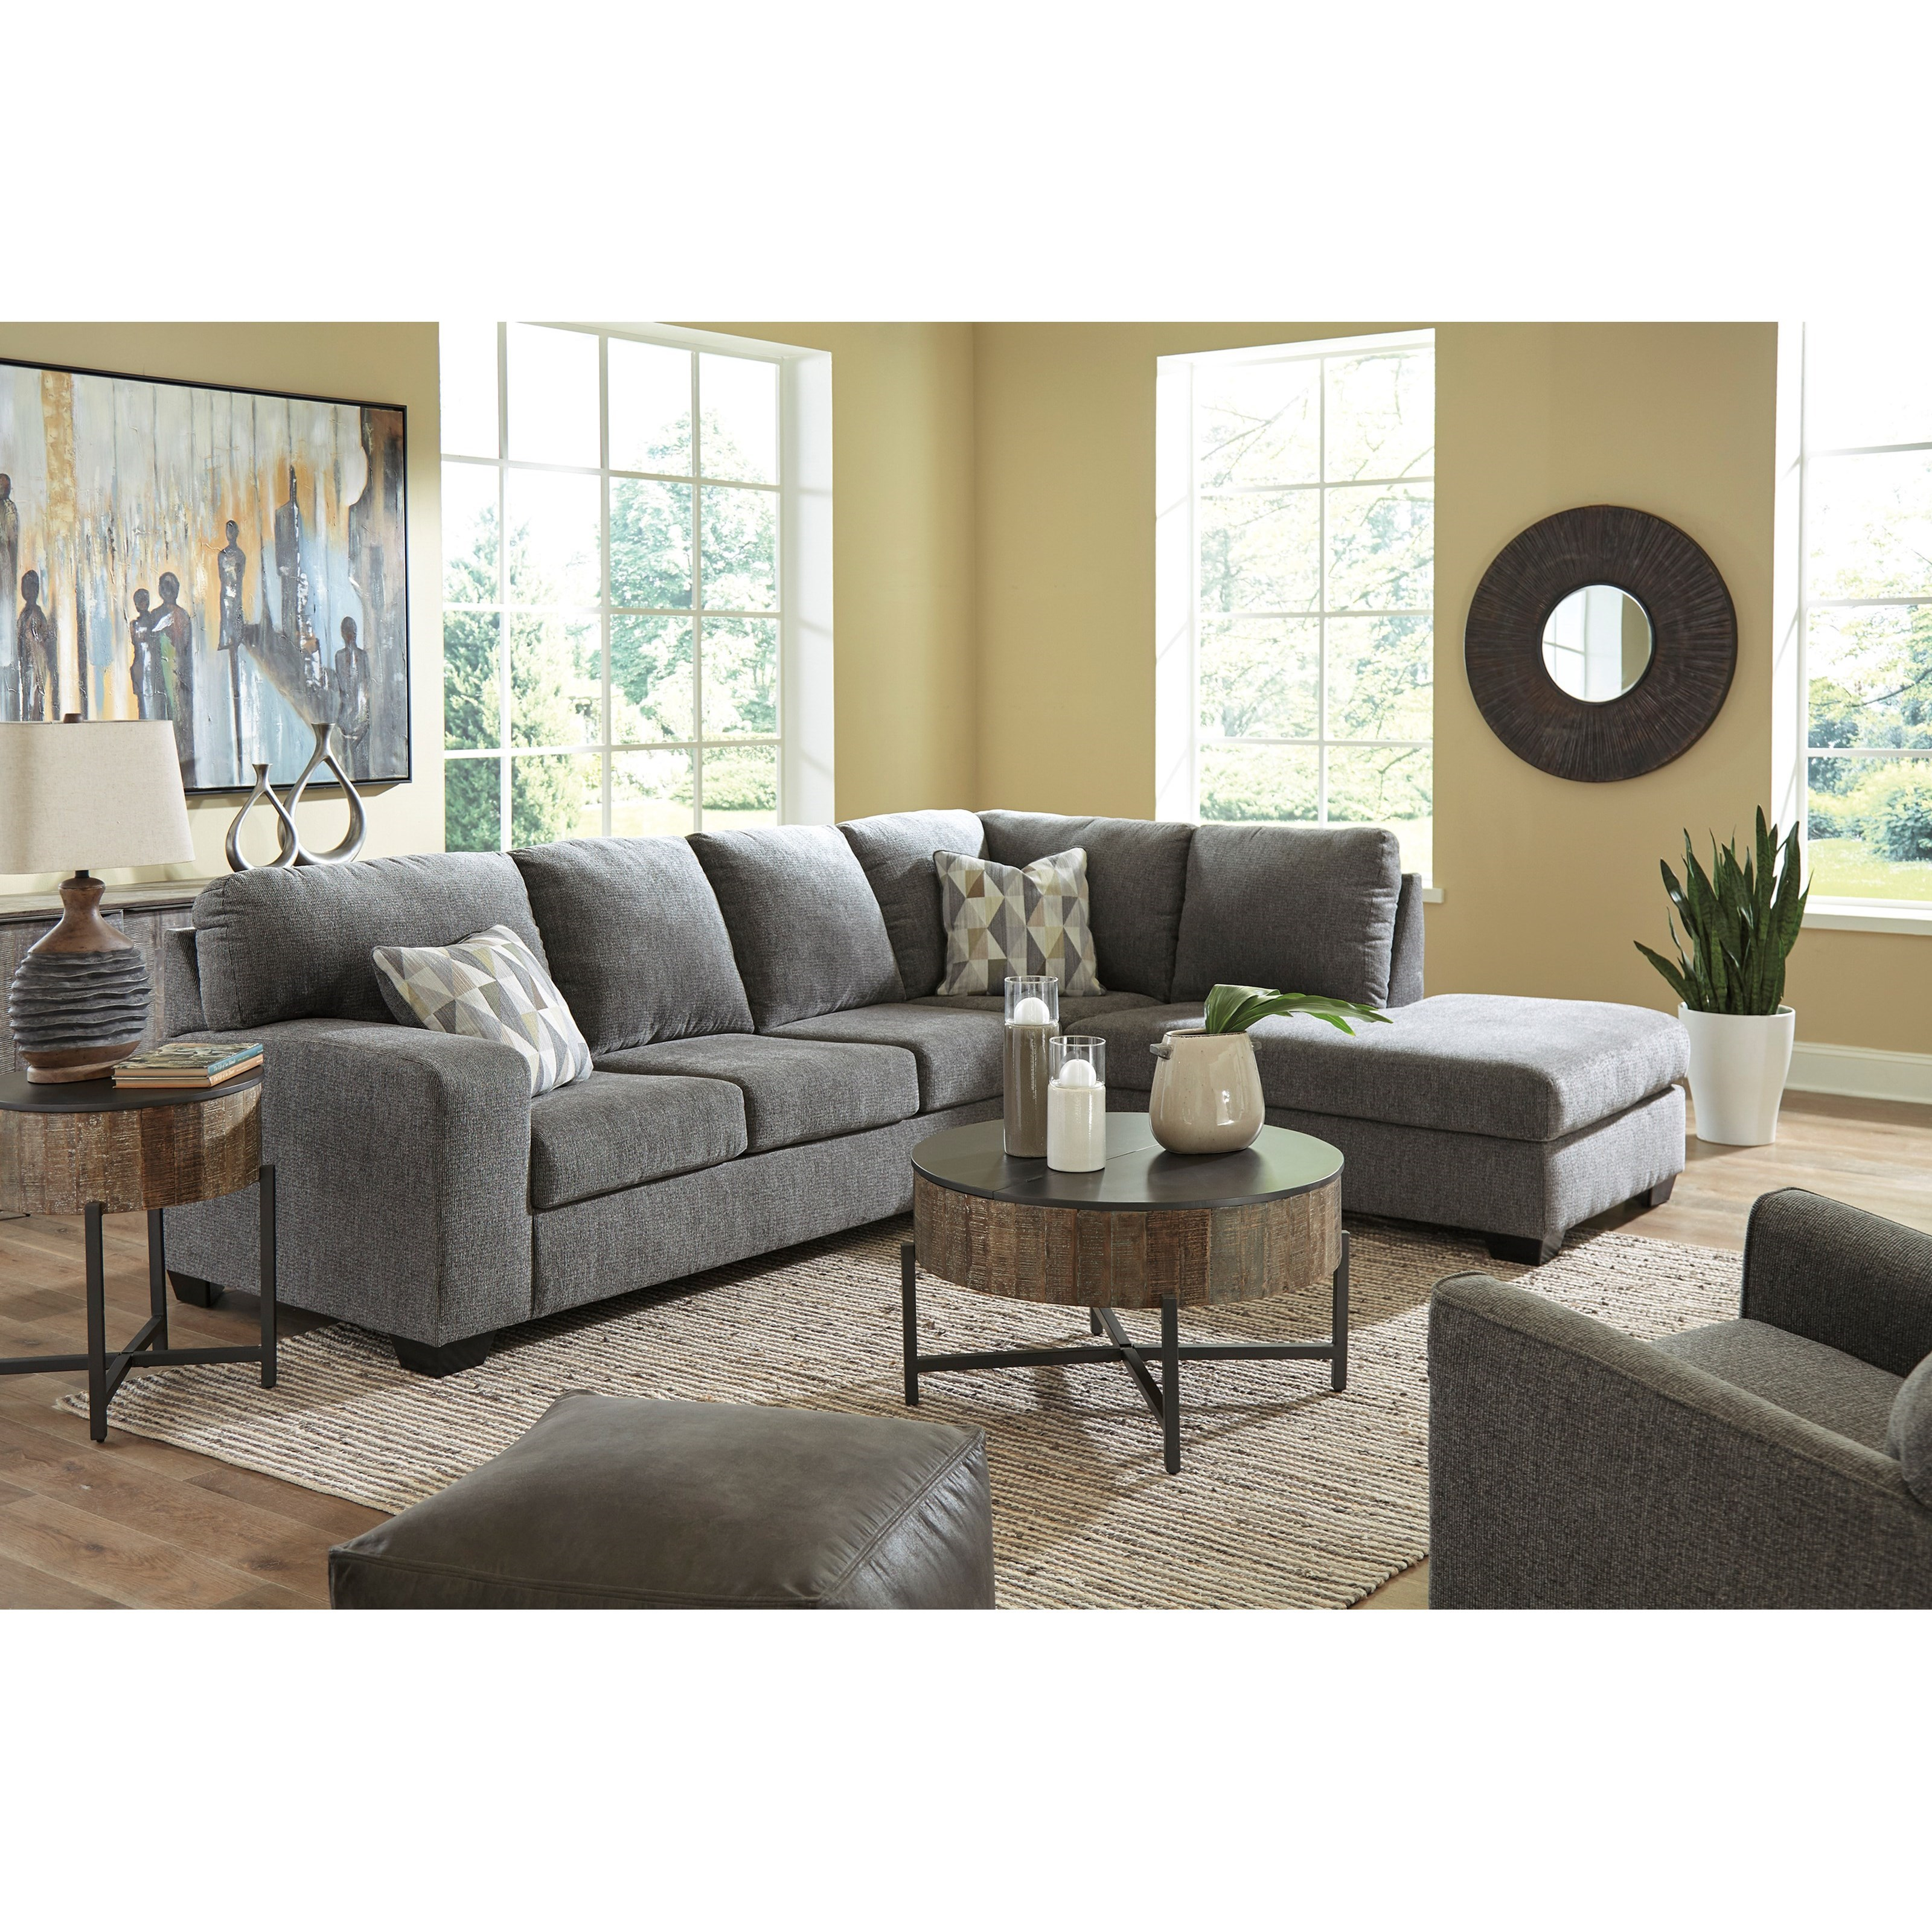 Dalhart Living Room Group by Benchcraft at Miller Waldrop Furniture and Decor